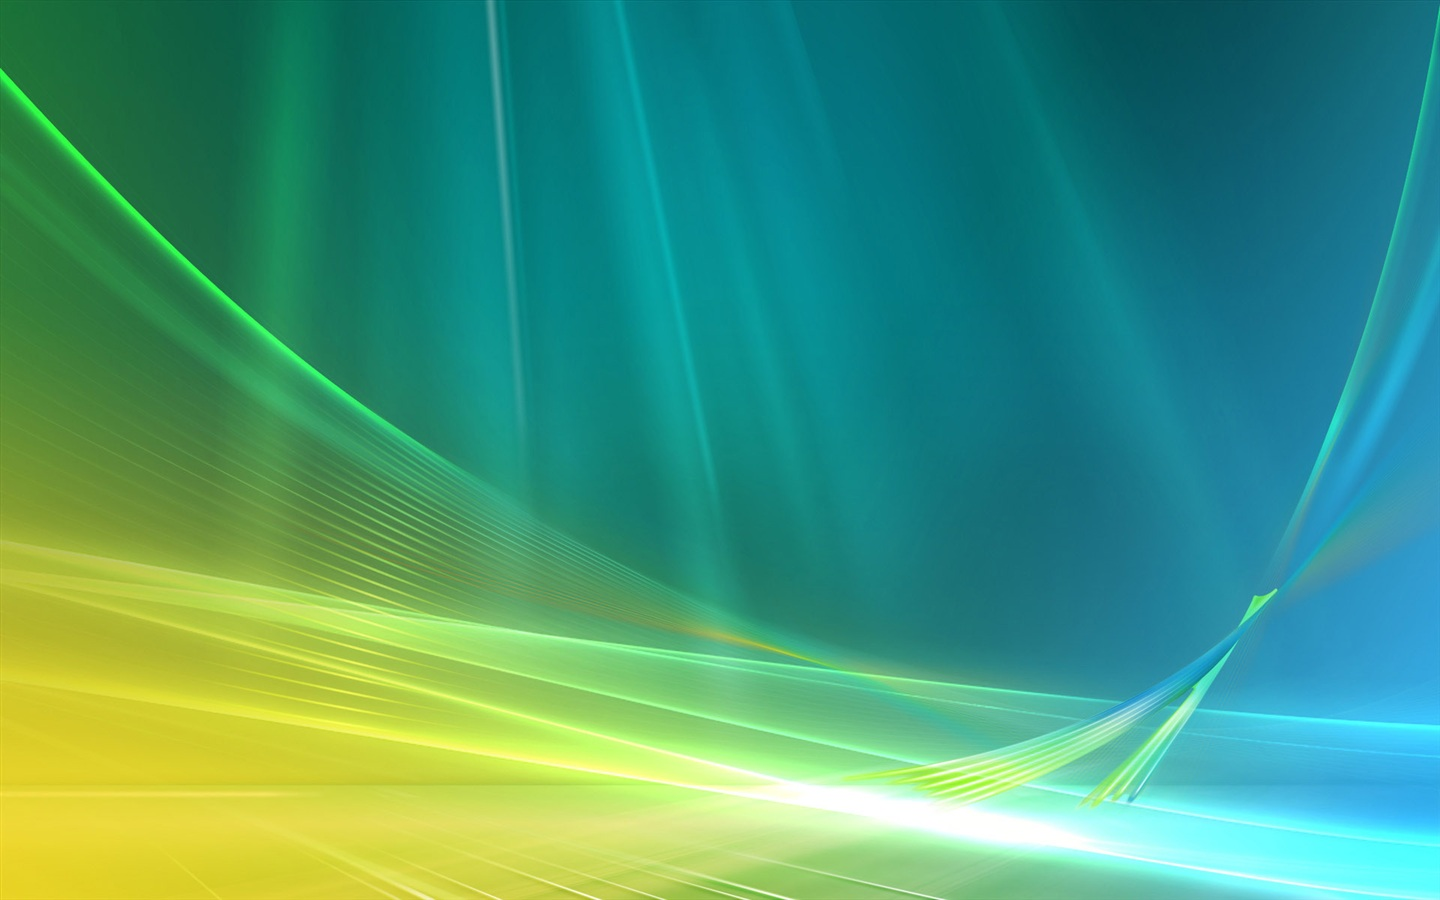 Wallpaper Blue And Green Abstract Space Curve 1920x1200 Hd